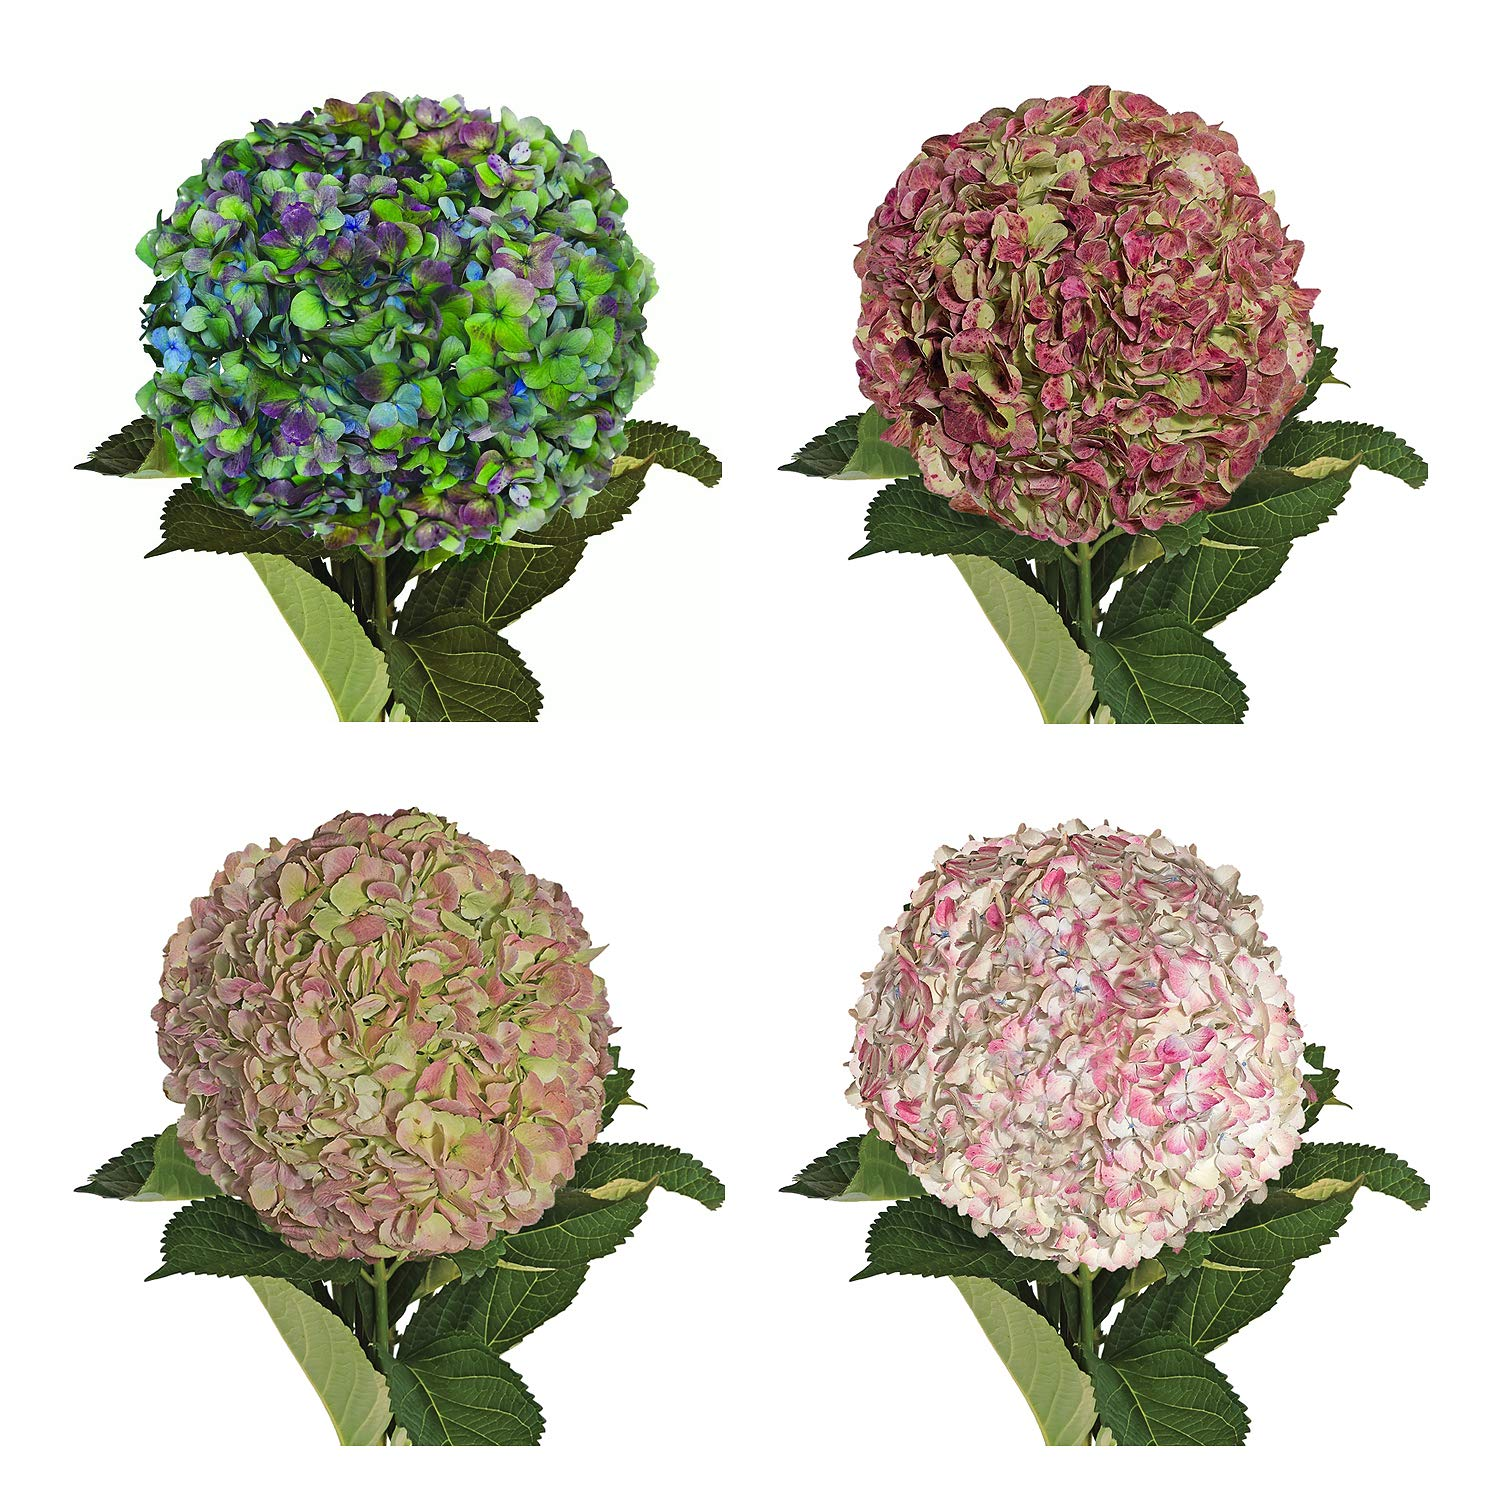 Farm Fresh Natural Jumbo Antique Assorted Hydrangeas - Pack 12 by Bloomingmore